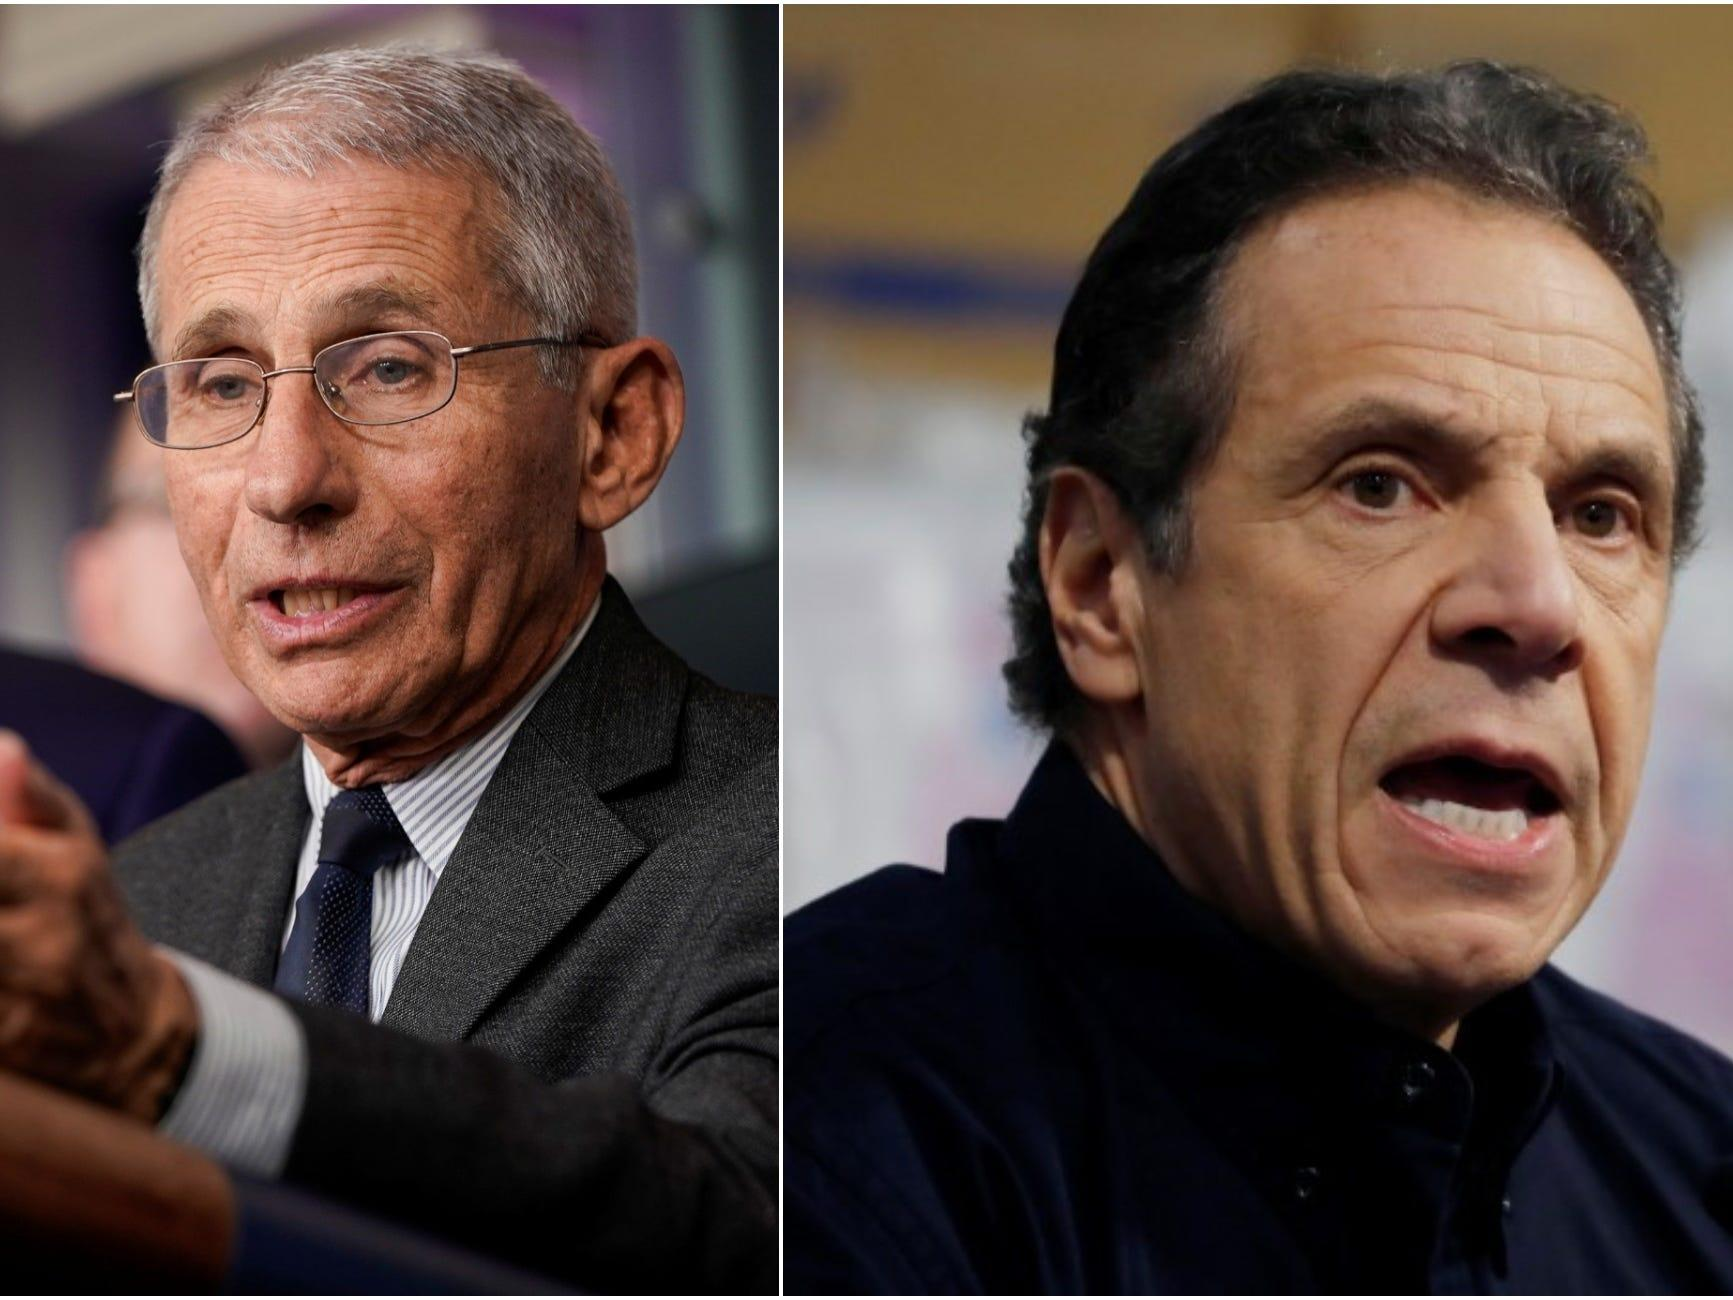 Dr. Anthony Fauci and Gov. Andrew Cuomo are the most trusted leaders in America on coronavirus right now. Trump is not.